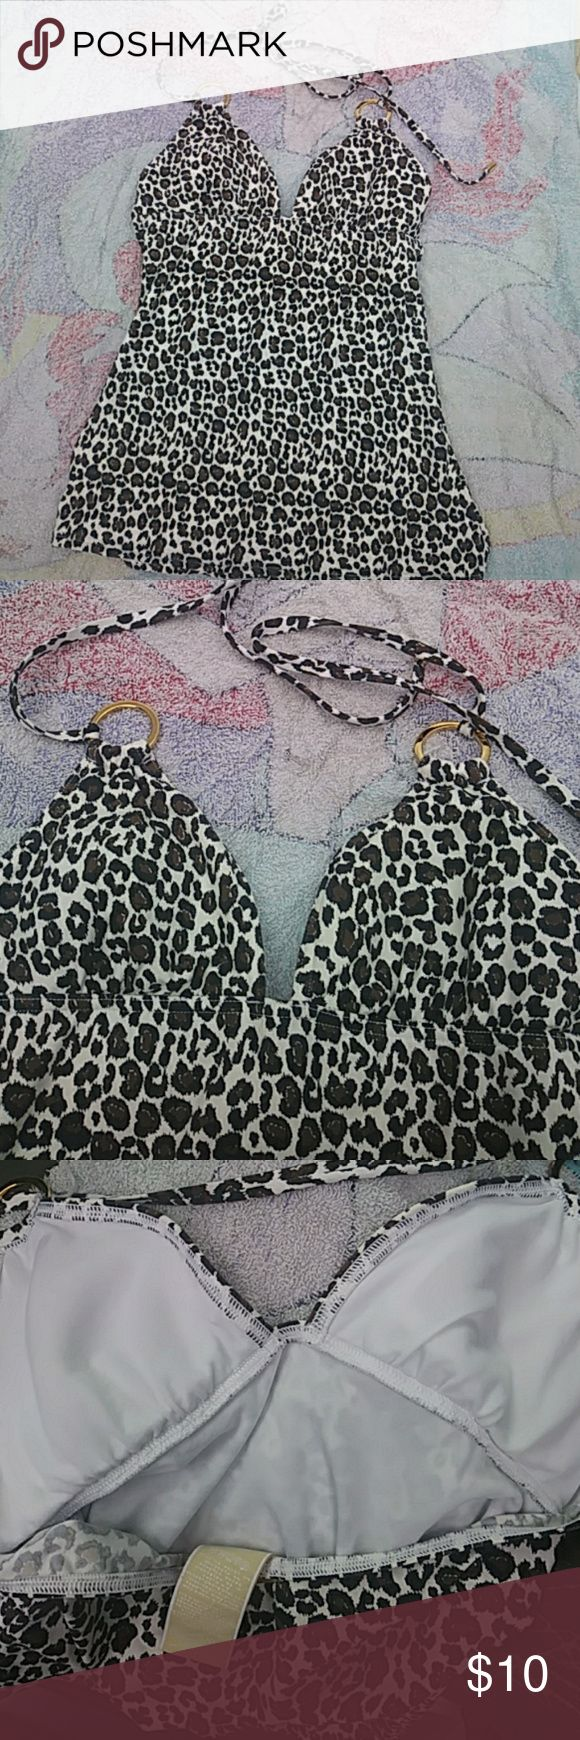 Michael Kors animal print tankini halter swim top Leopard brown and black printed over solid white background. Nylon and stretches. Drawstrings for halter top closing. Gold accents as shown for pretty detail. In excellent barely worn condition Michael Kors Swim